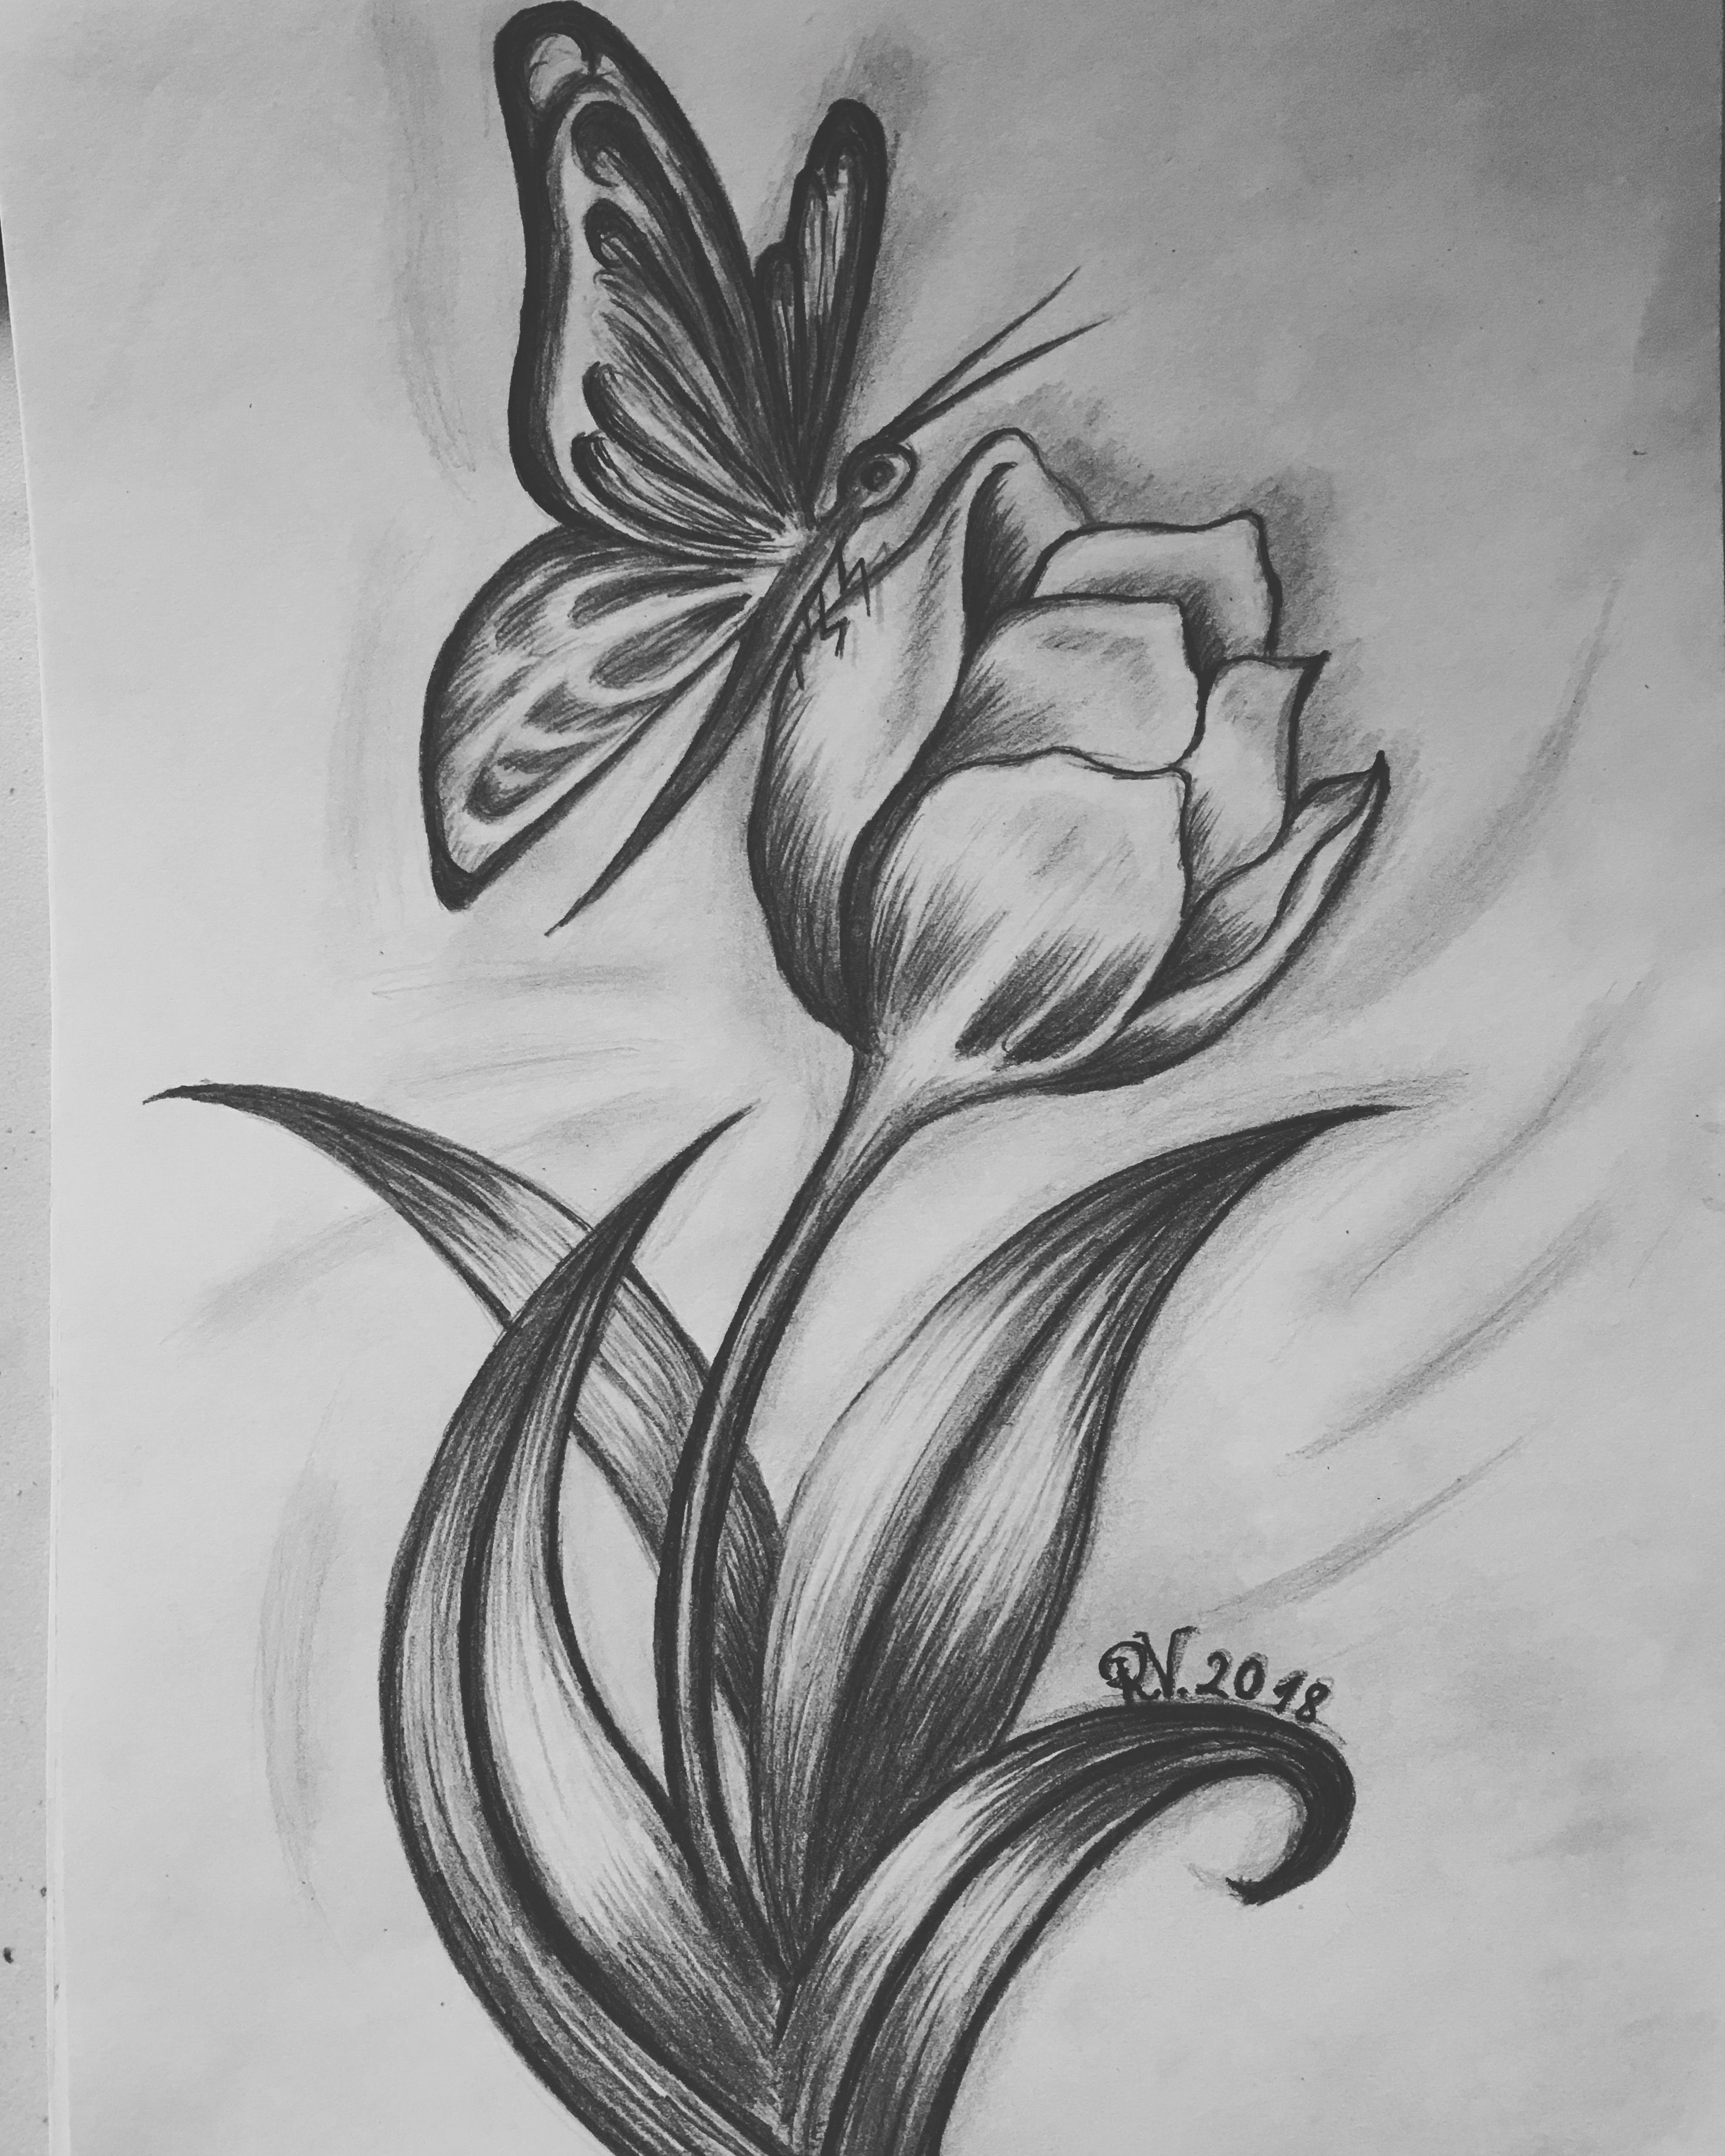 Kelas 1c Pgsd Mejeng Download 19 Easy Pencil Drawings Of Flowers And Butterflies With Colours For more tips and explanations, visit the video linked to this pin! kelas 1c pgsd mejeng blogger